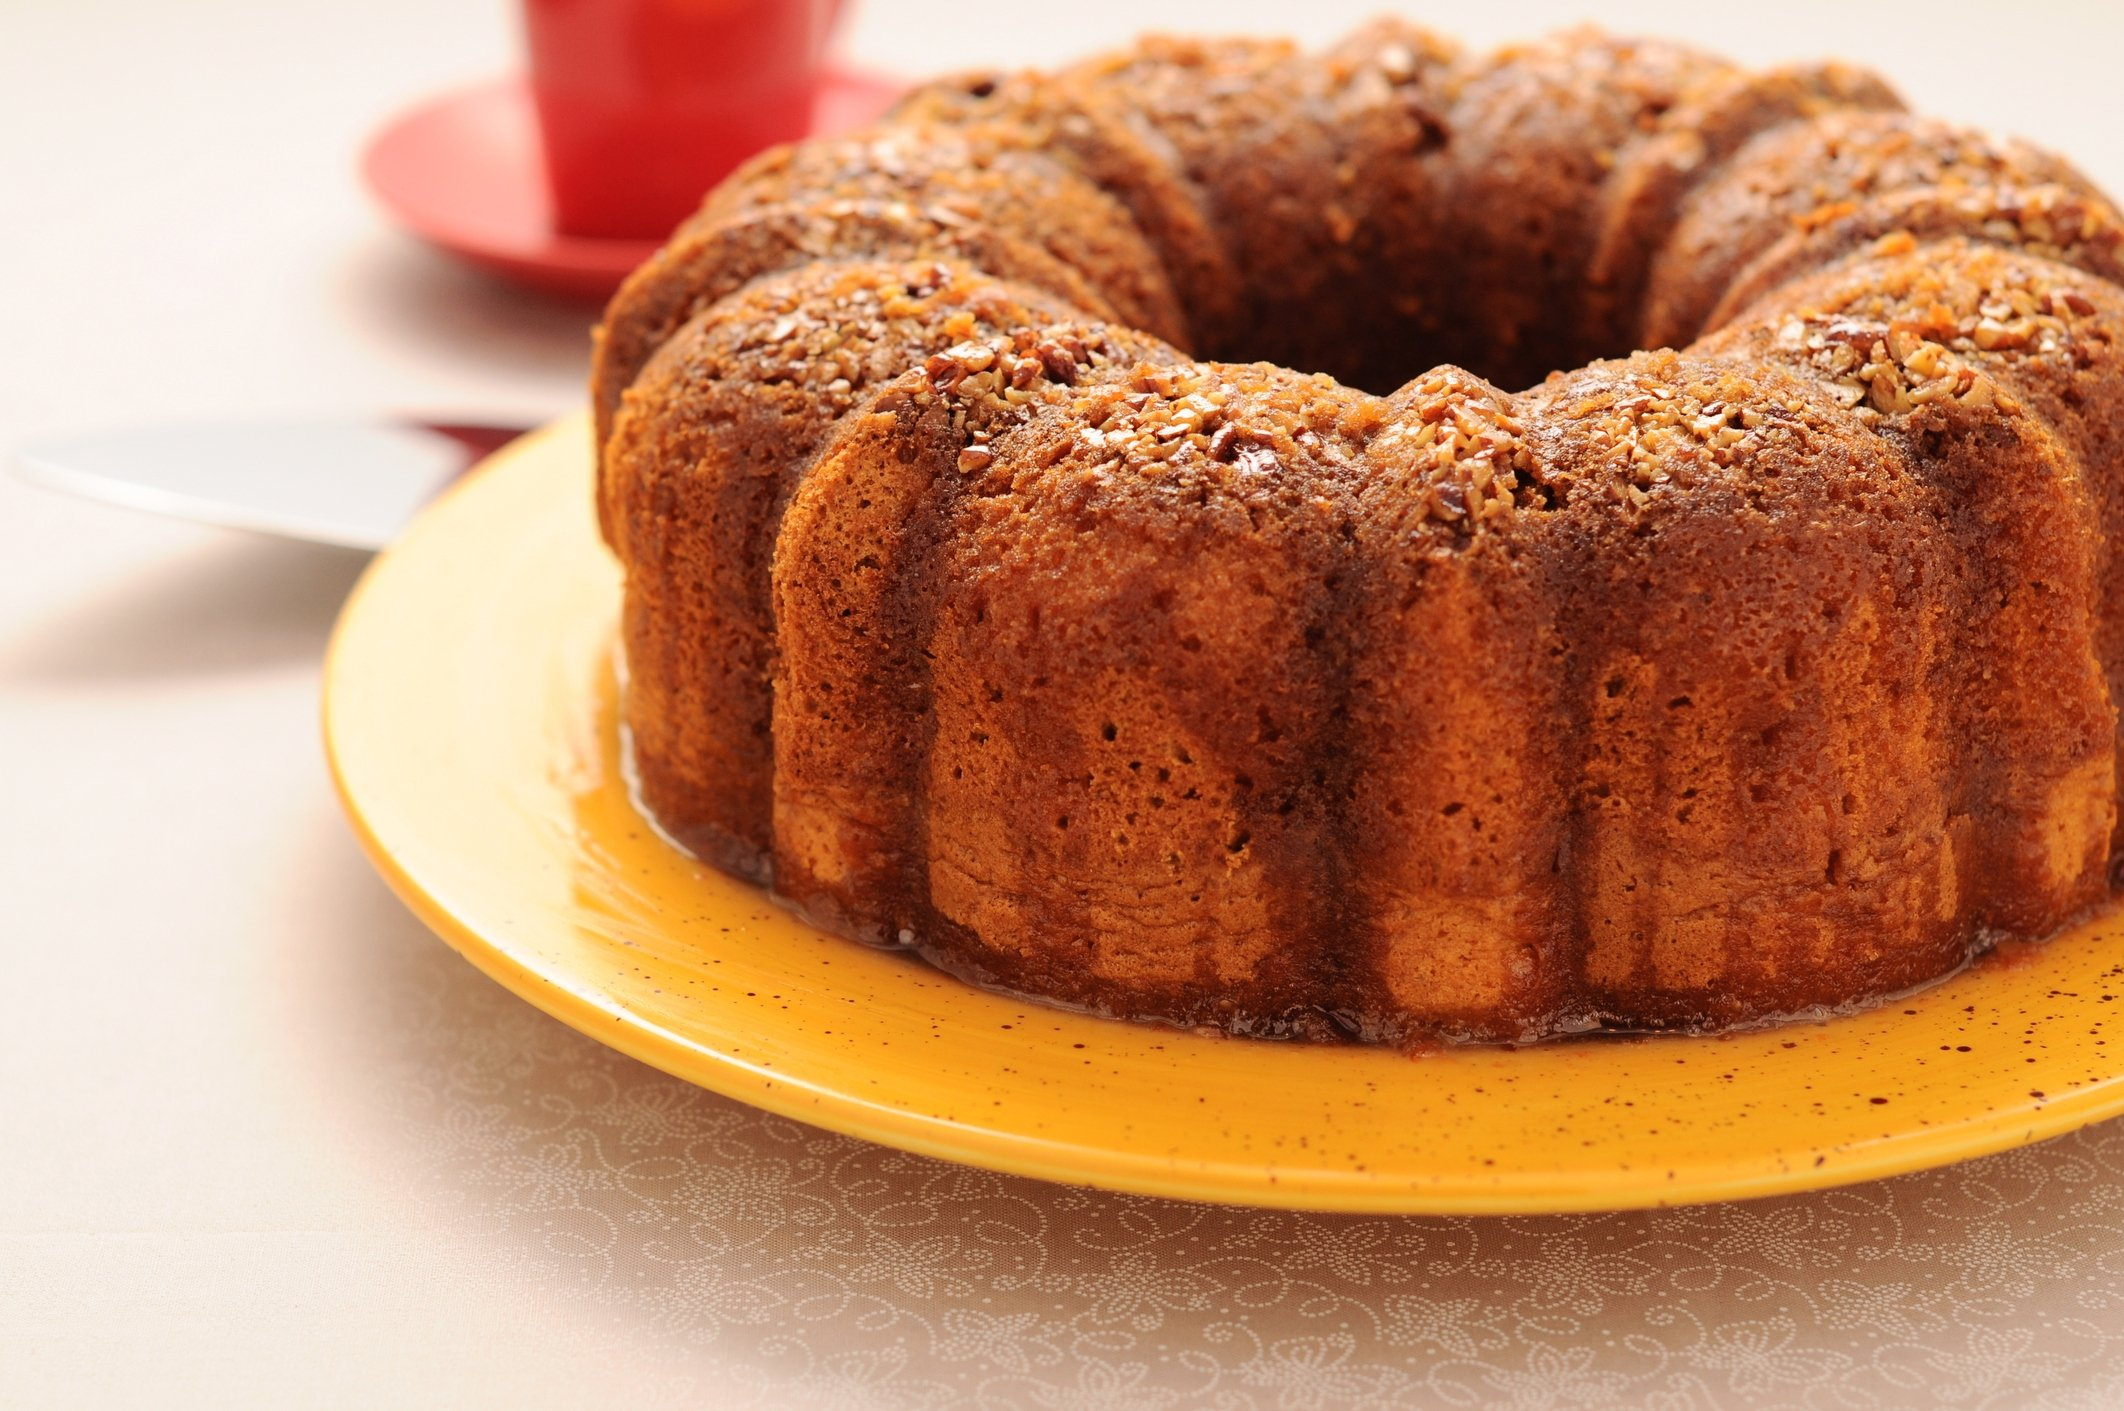 Topping off your coffee cake with crushed hazelnuts gives it great texture and flavor. (iStock Photo)